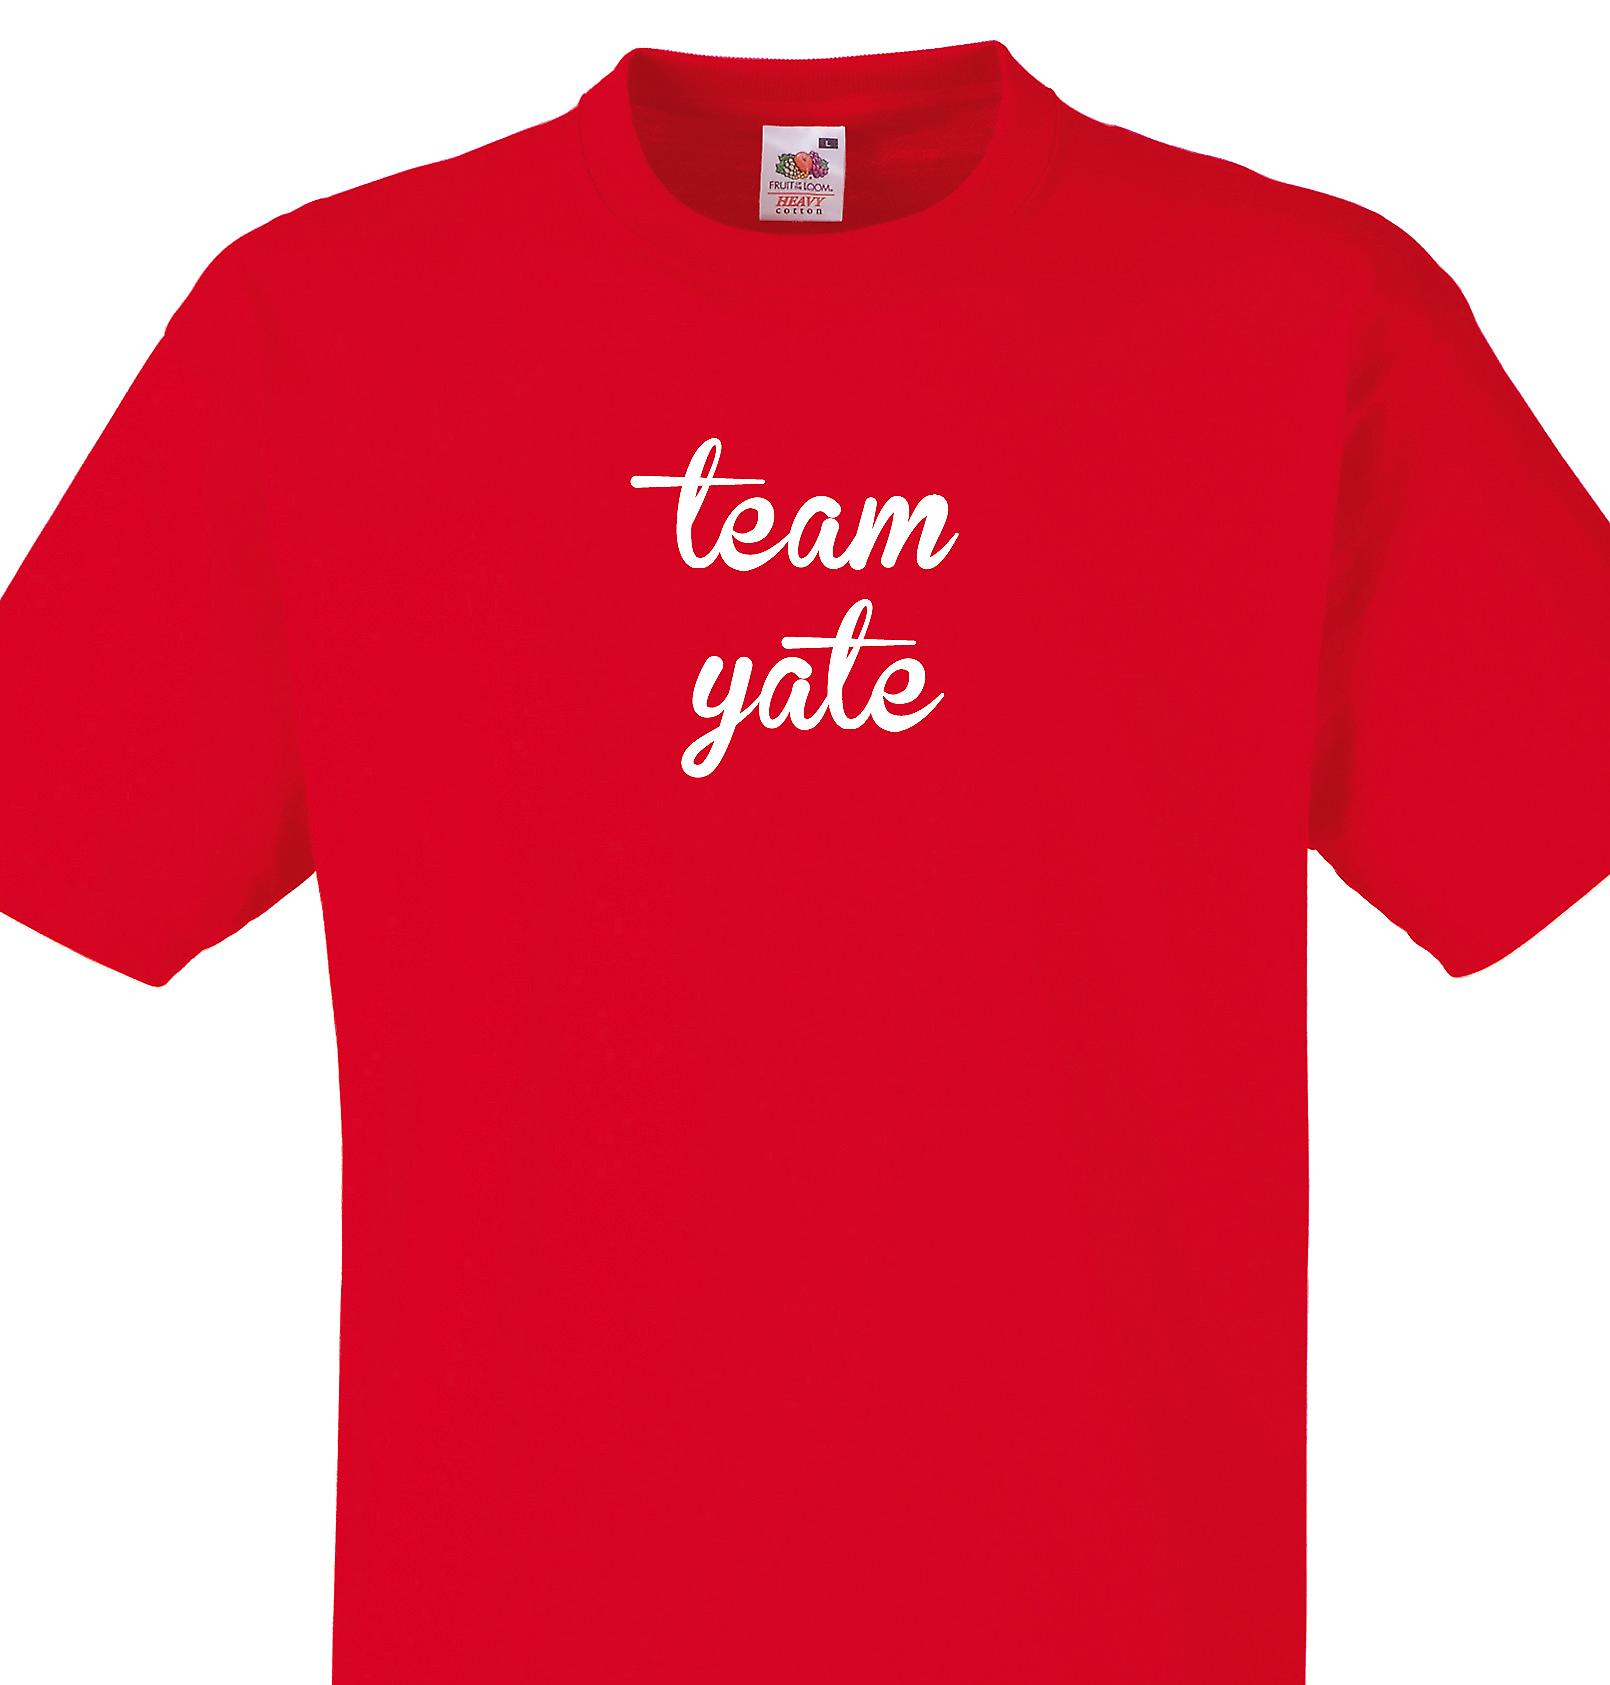 Team Yate Red T shirt